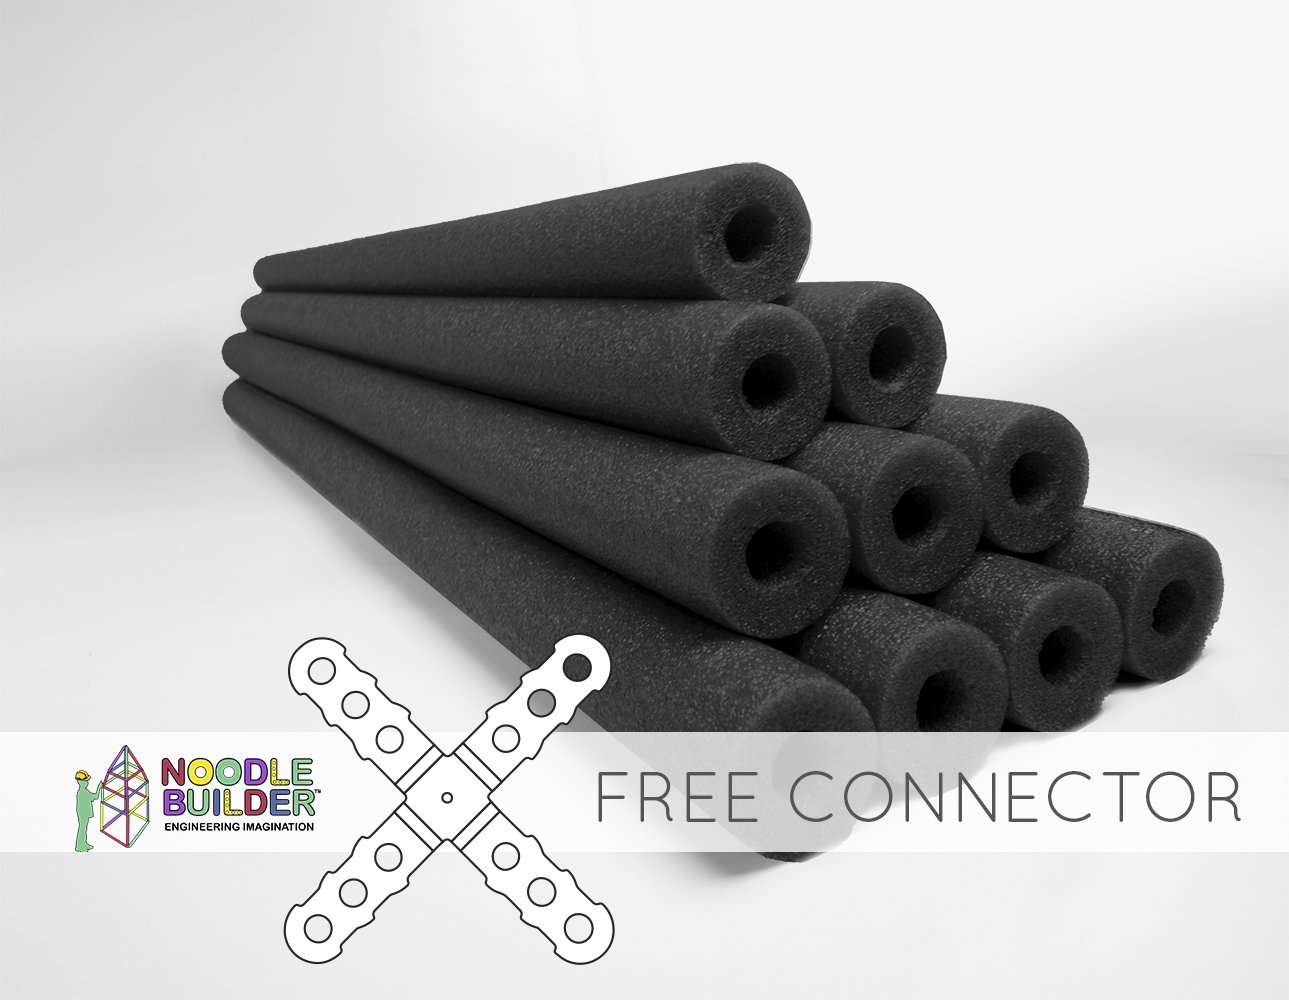 Oodles of Noodles Deluxe Foam Pool Swim Noodles 10 Pack Black 52 Inch Wholesale Pricing Bulk Pack and Free Connector by Oodles of Noodles